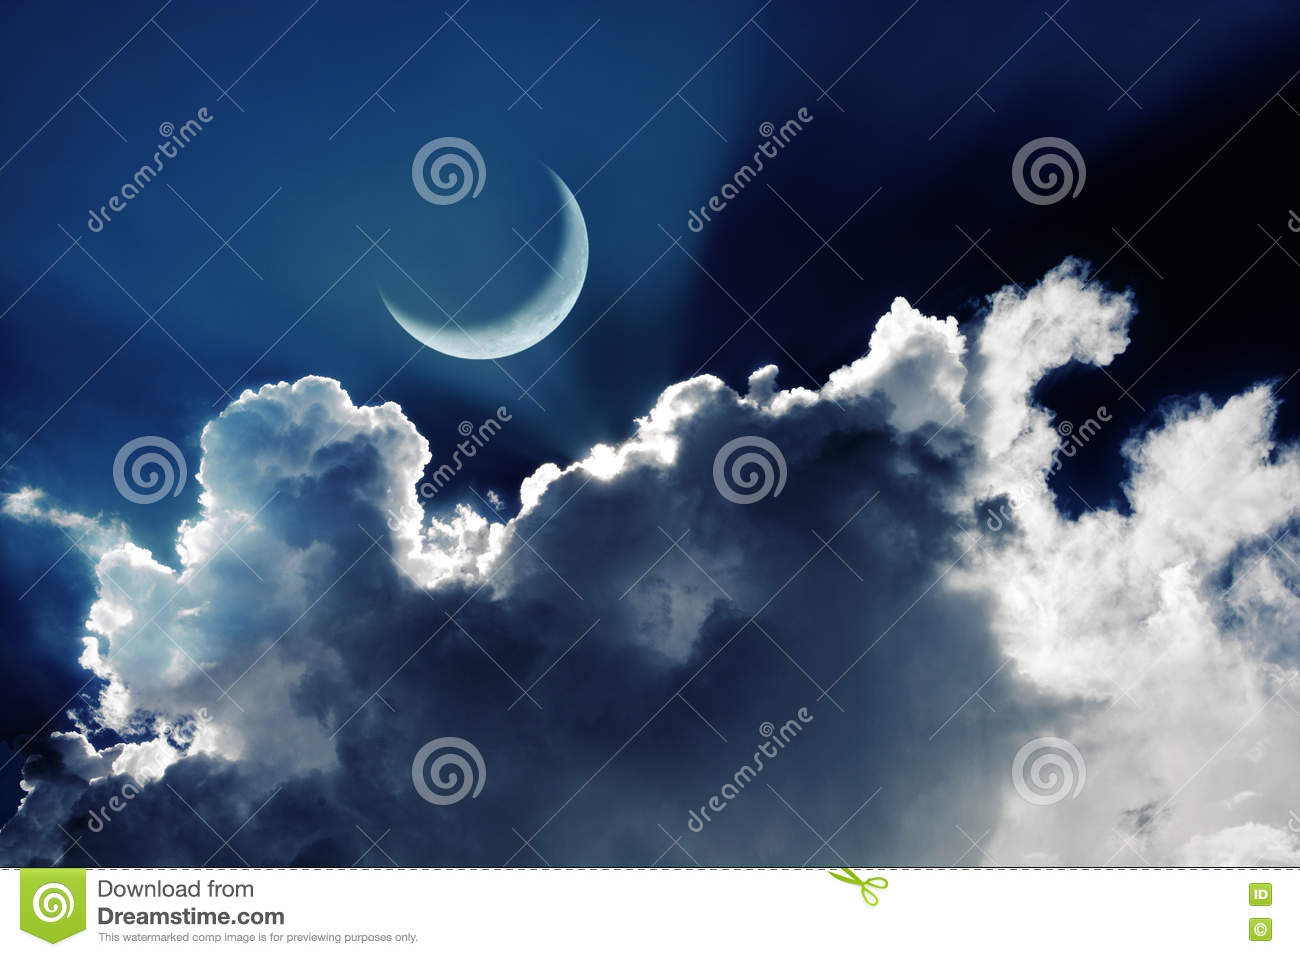 Crescent moon in a beautiful night sky with glowing clouds